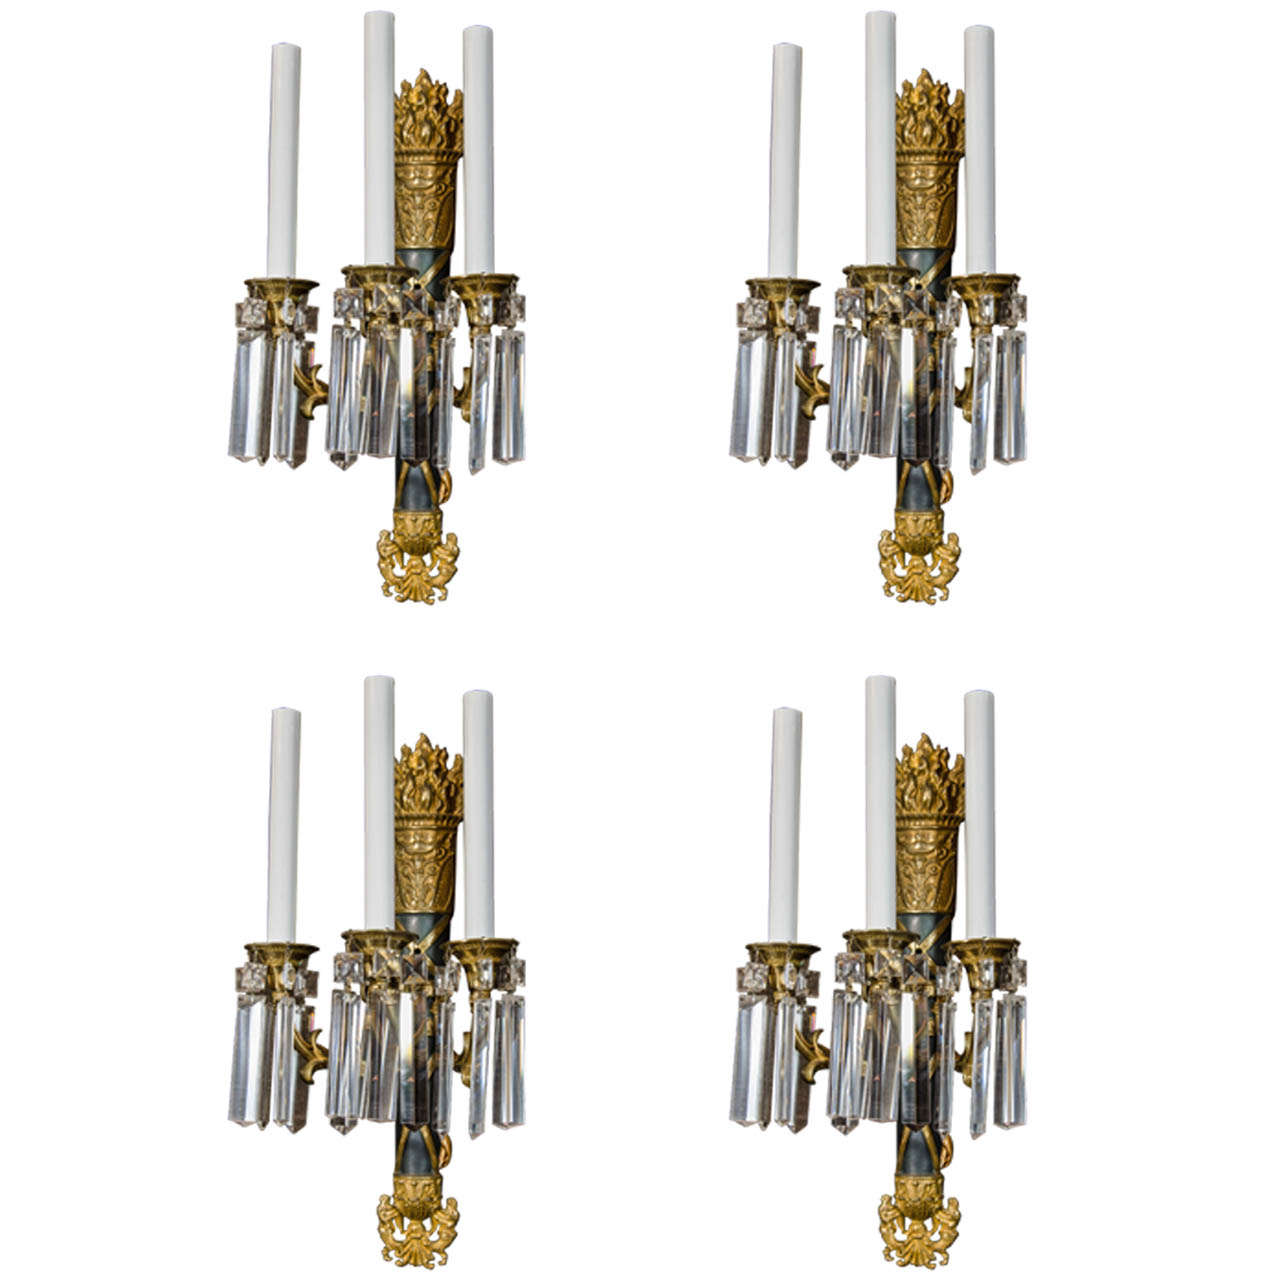 A Pair of Antique French Louis XVI Style Bronze and Crystal Wall Sconces